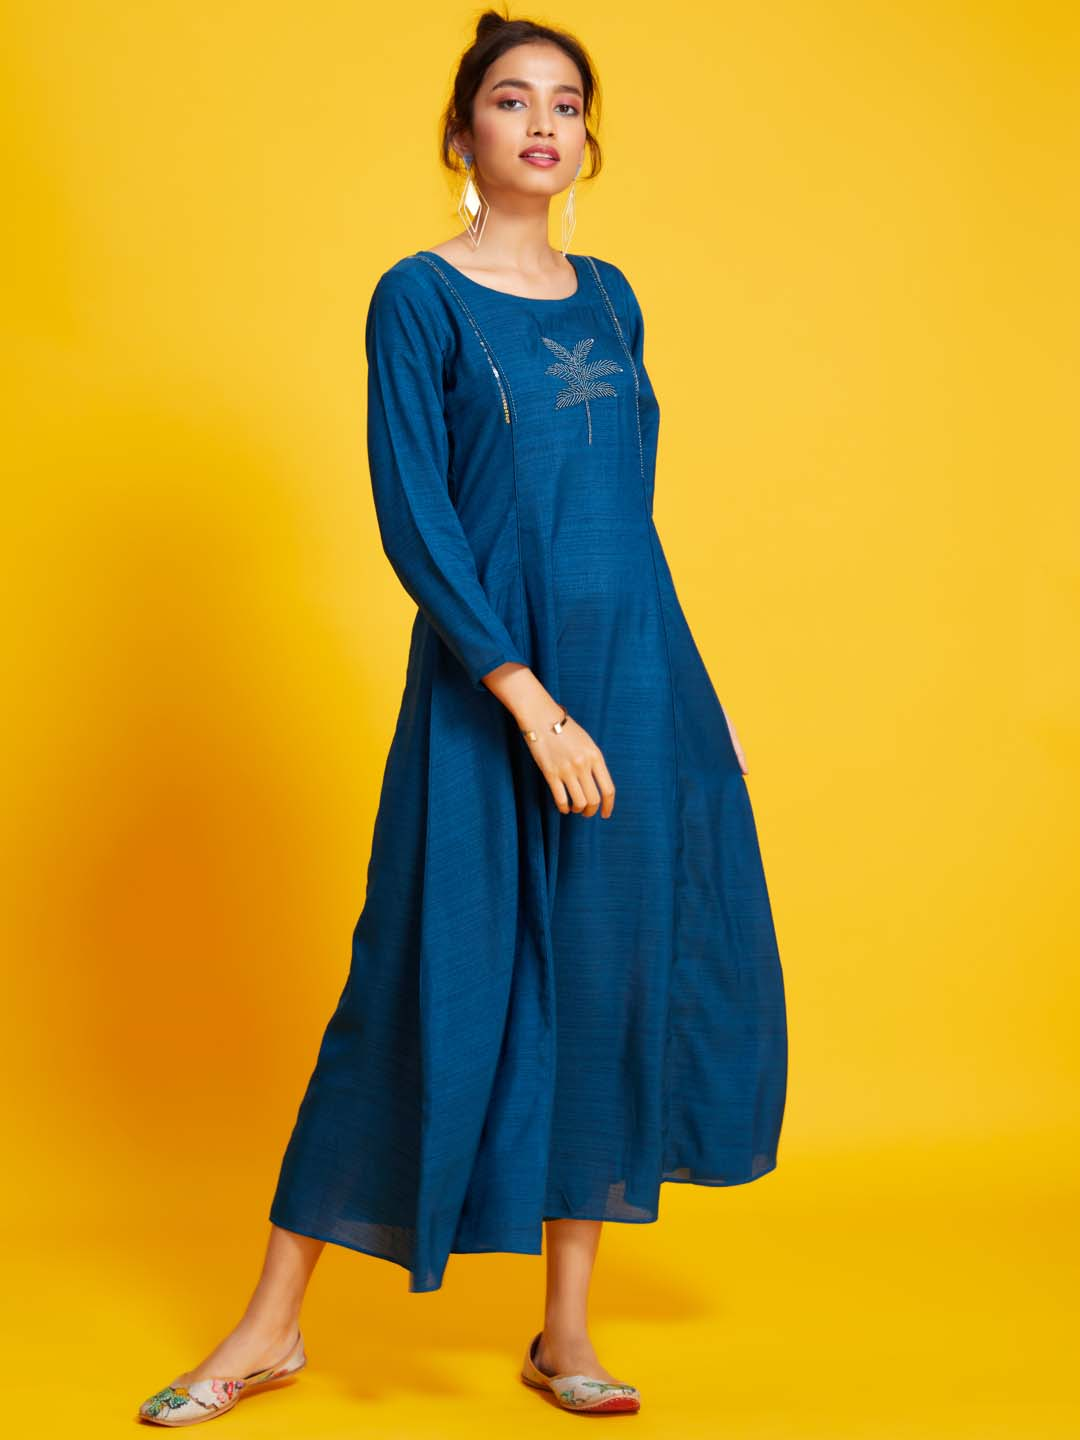 Teal Navy Embellished Cotton Silk A-Line Dress